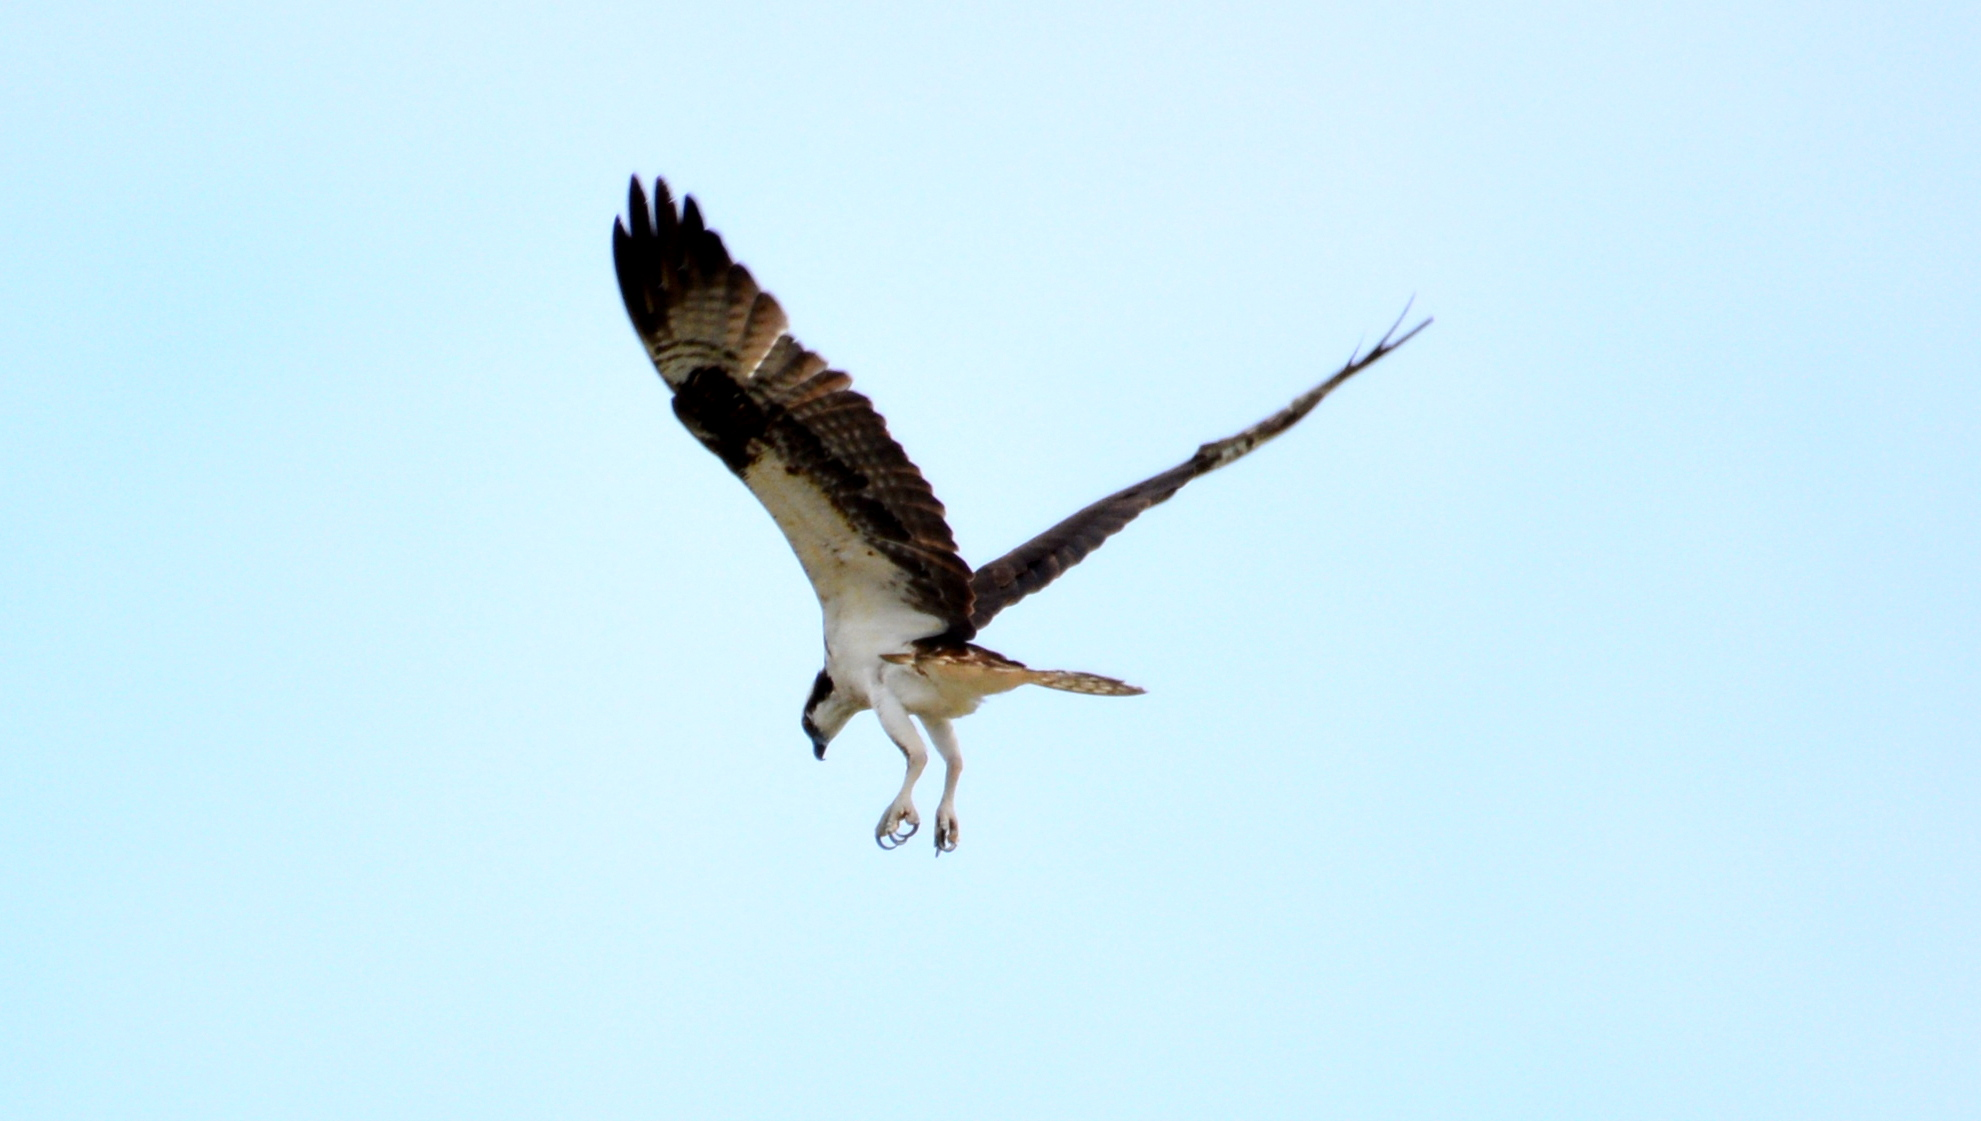 An Osprey hovers over the water just before displacing one of the Peregrines from its perch